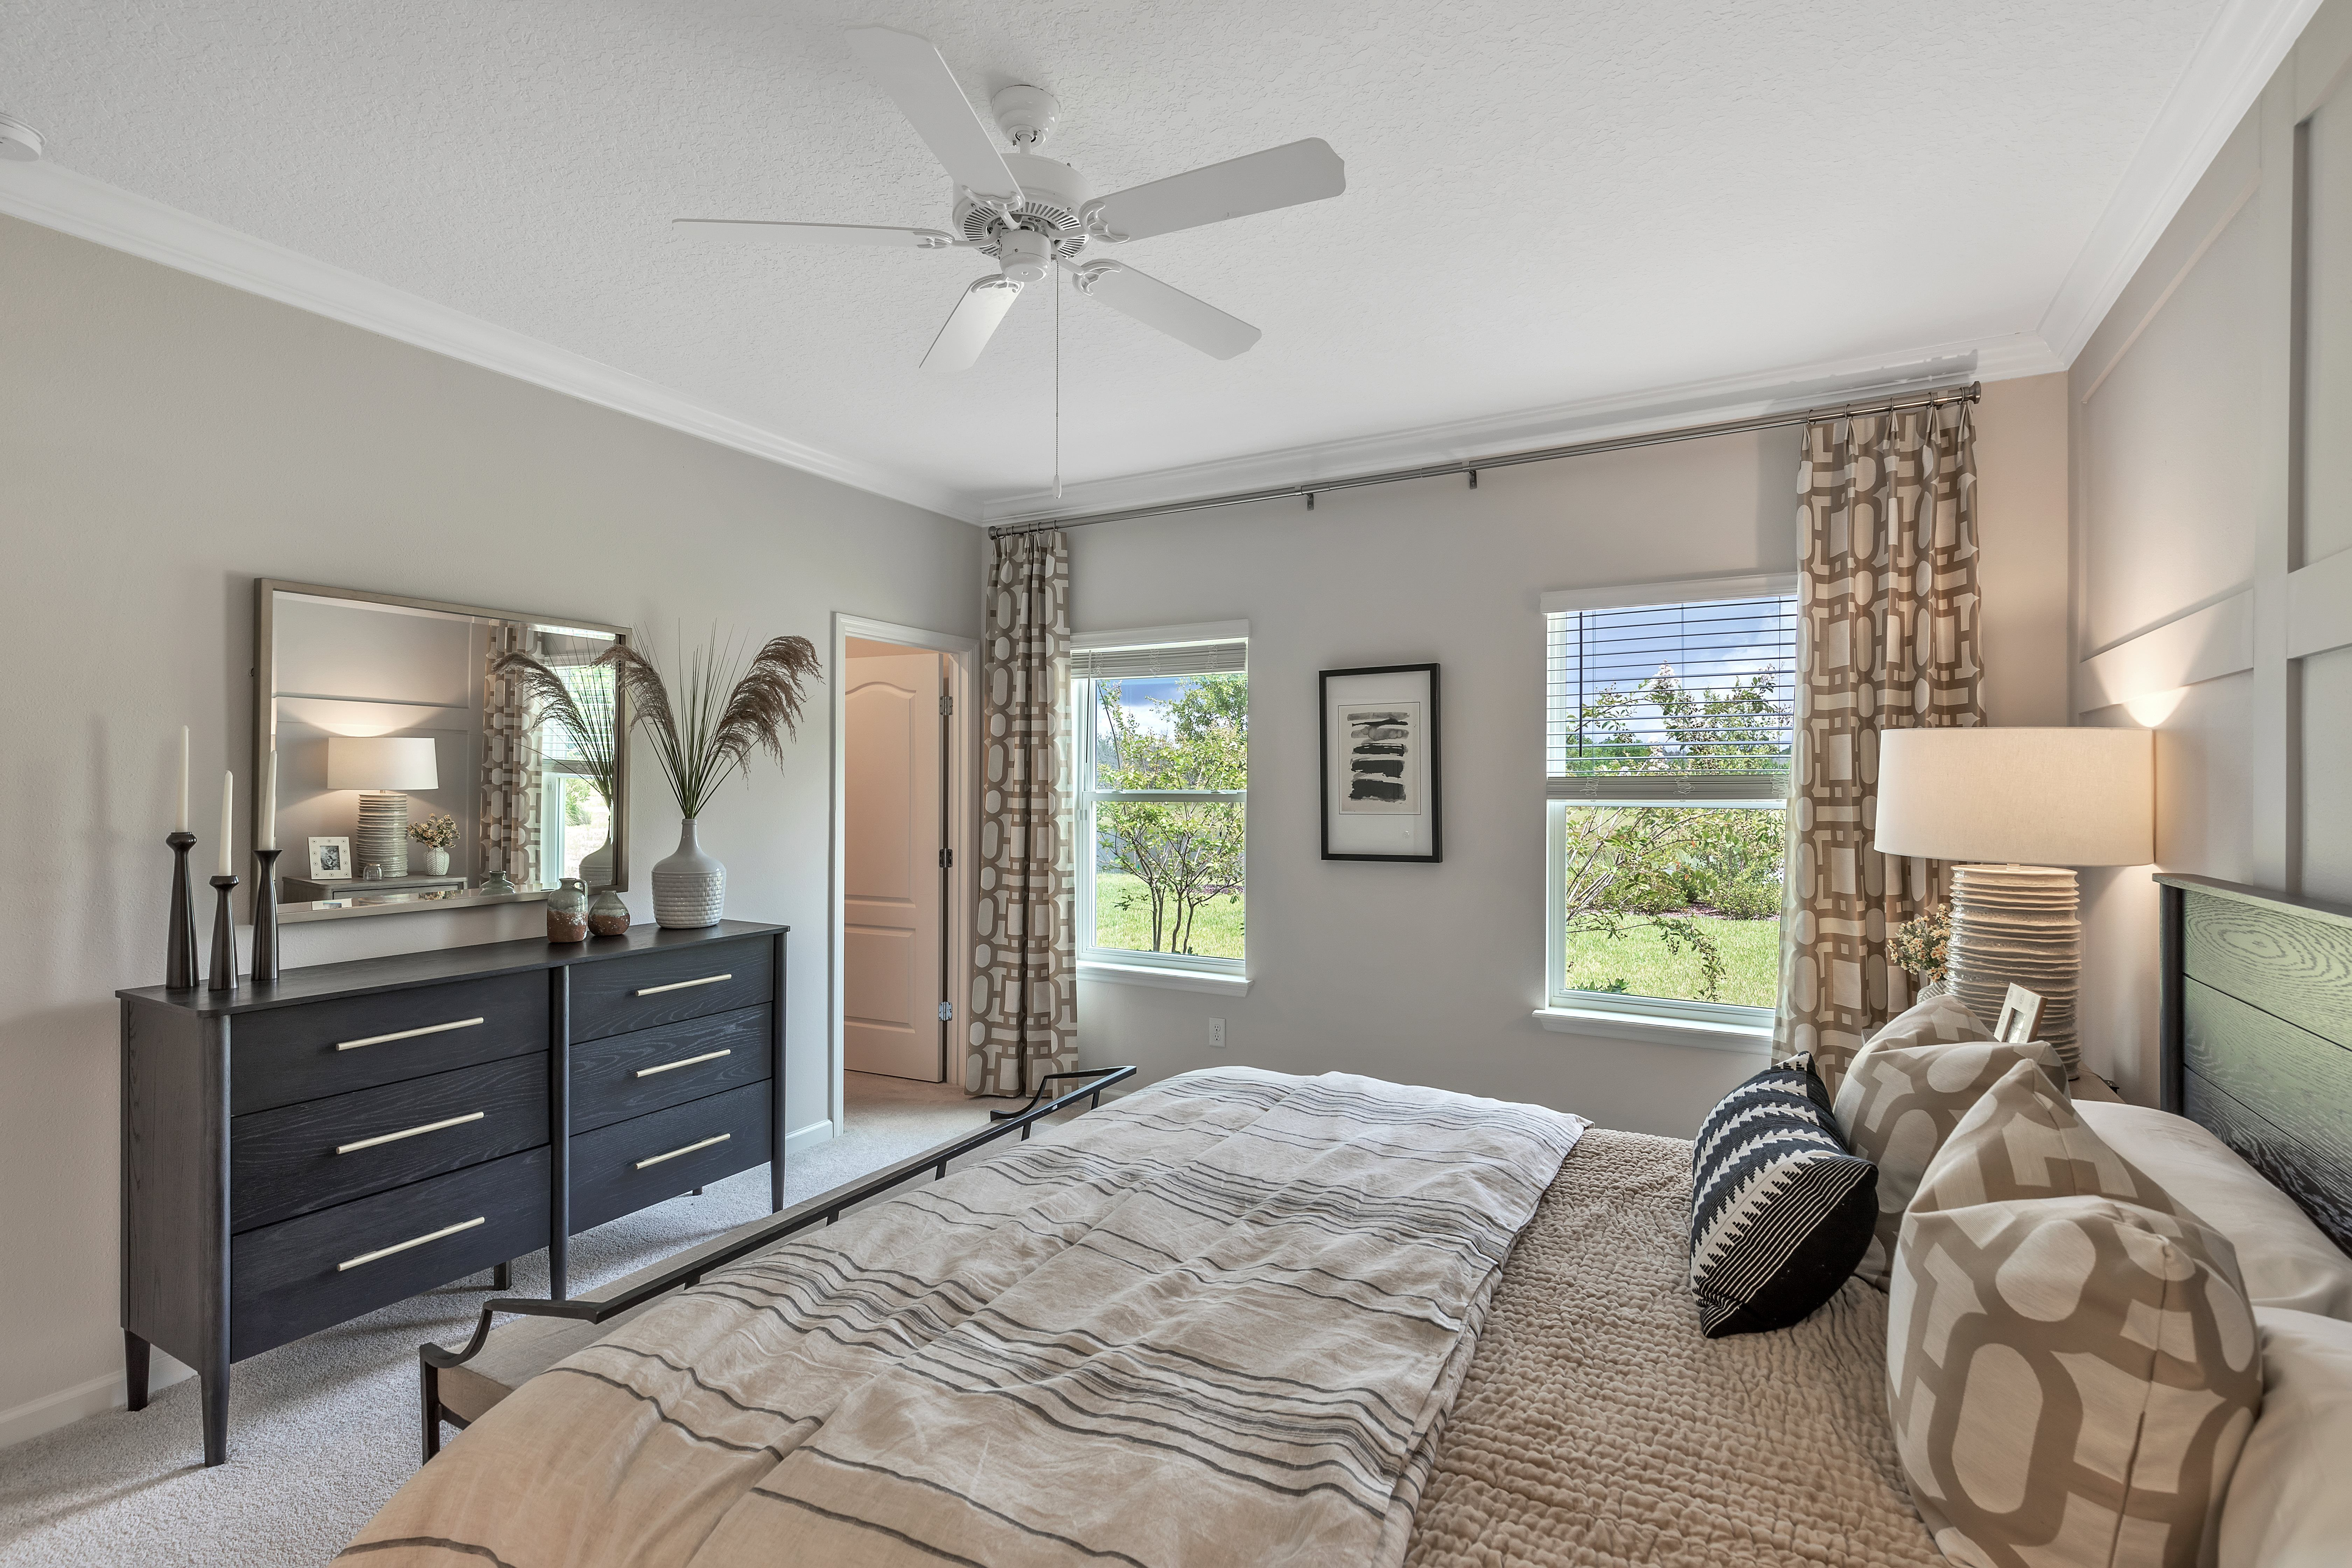 Bedroom featured in the INDEPENDENCE By Lennar in Jacksonville-St. Augustine, FL